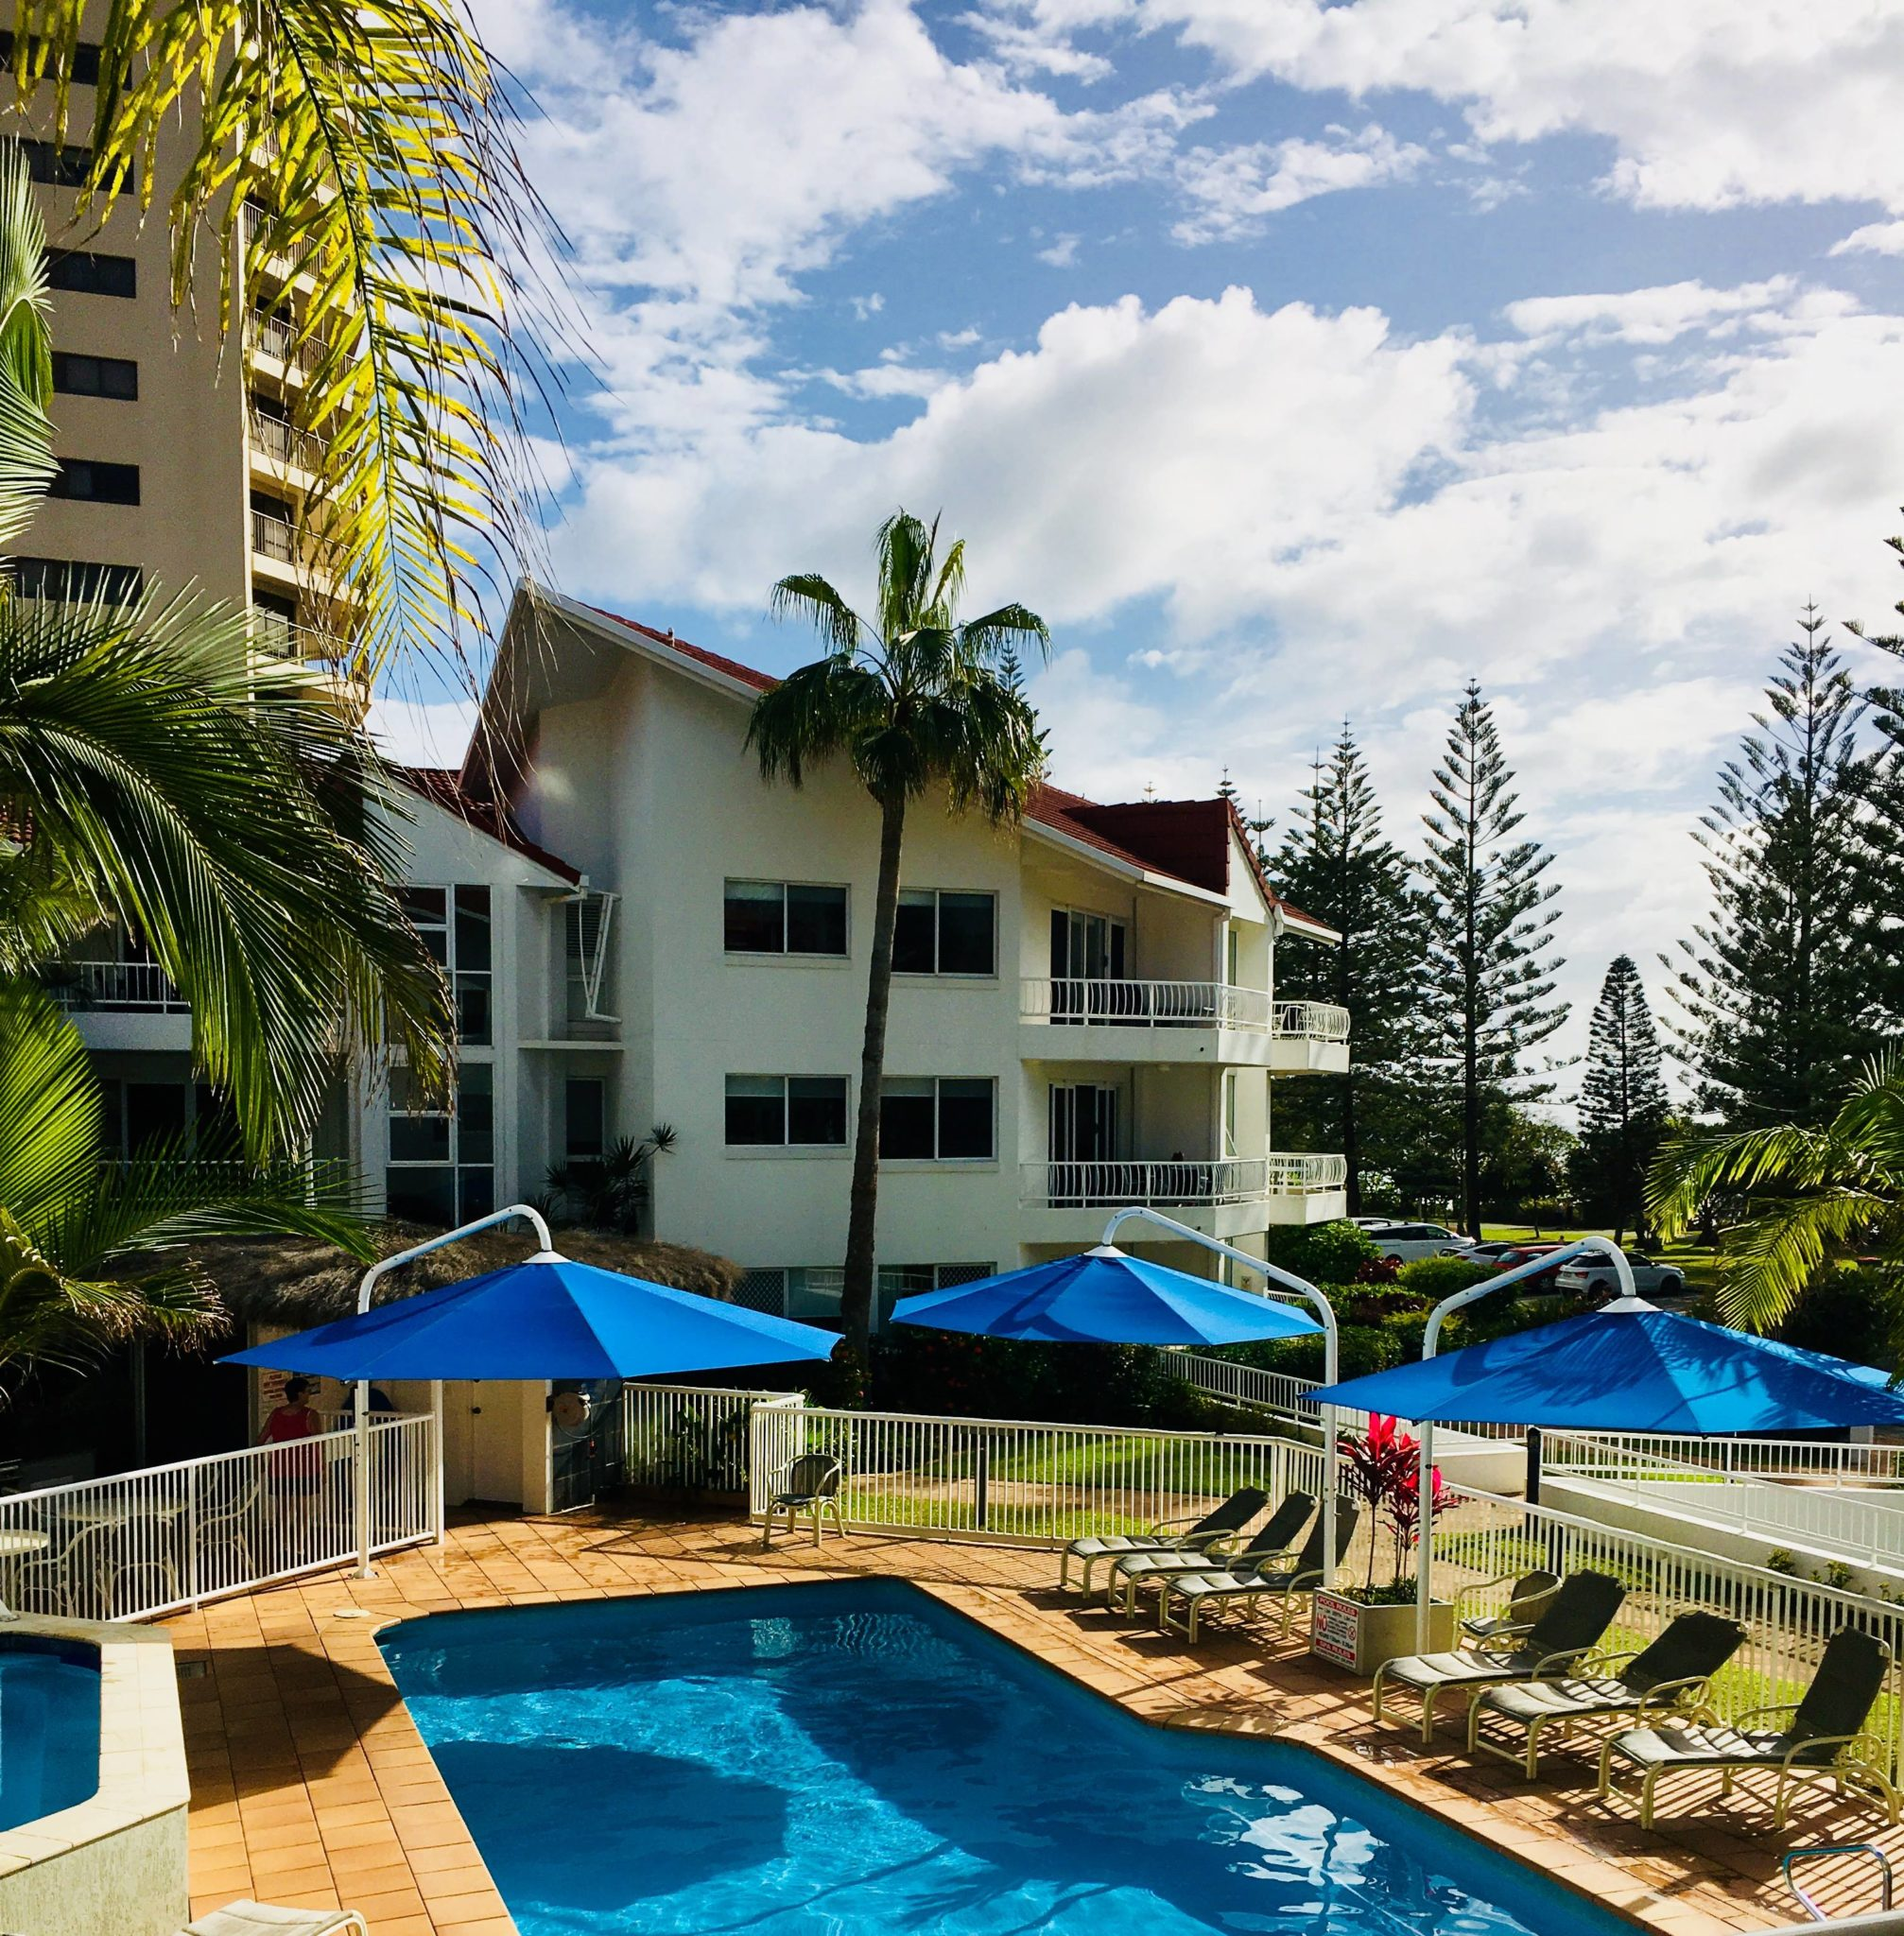 Le beach apartments Burleigh Heads